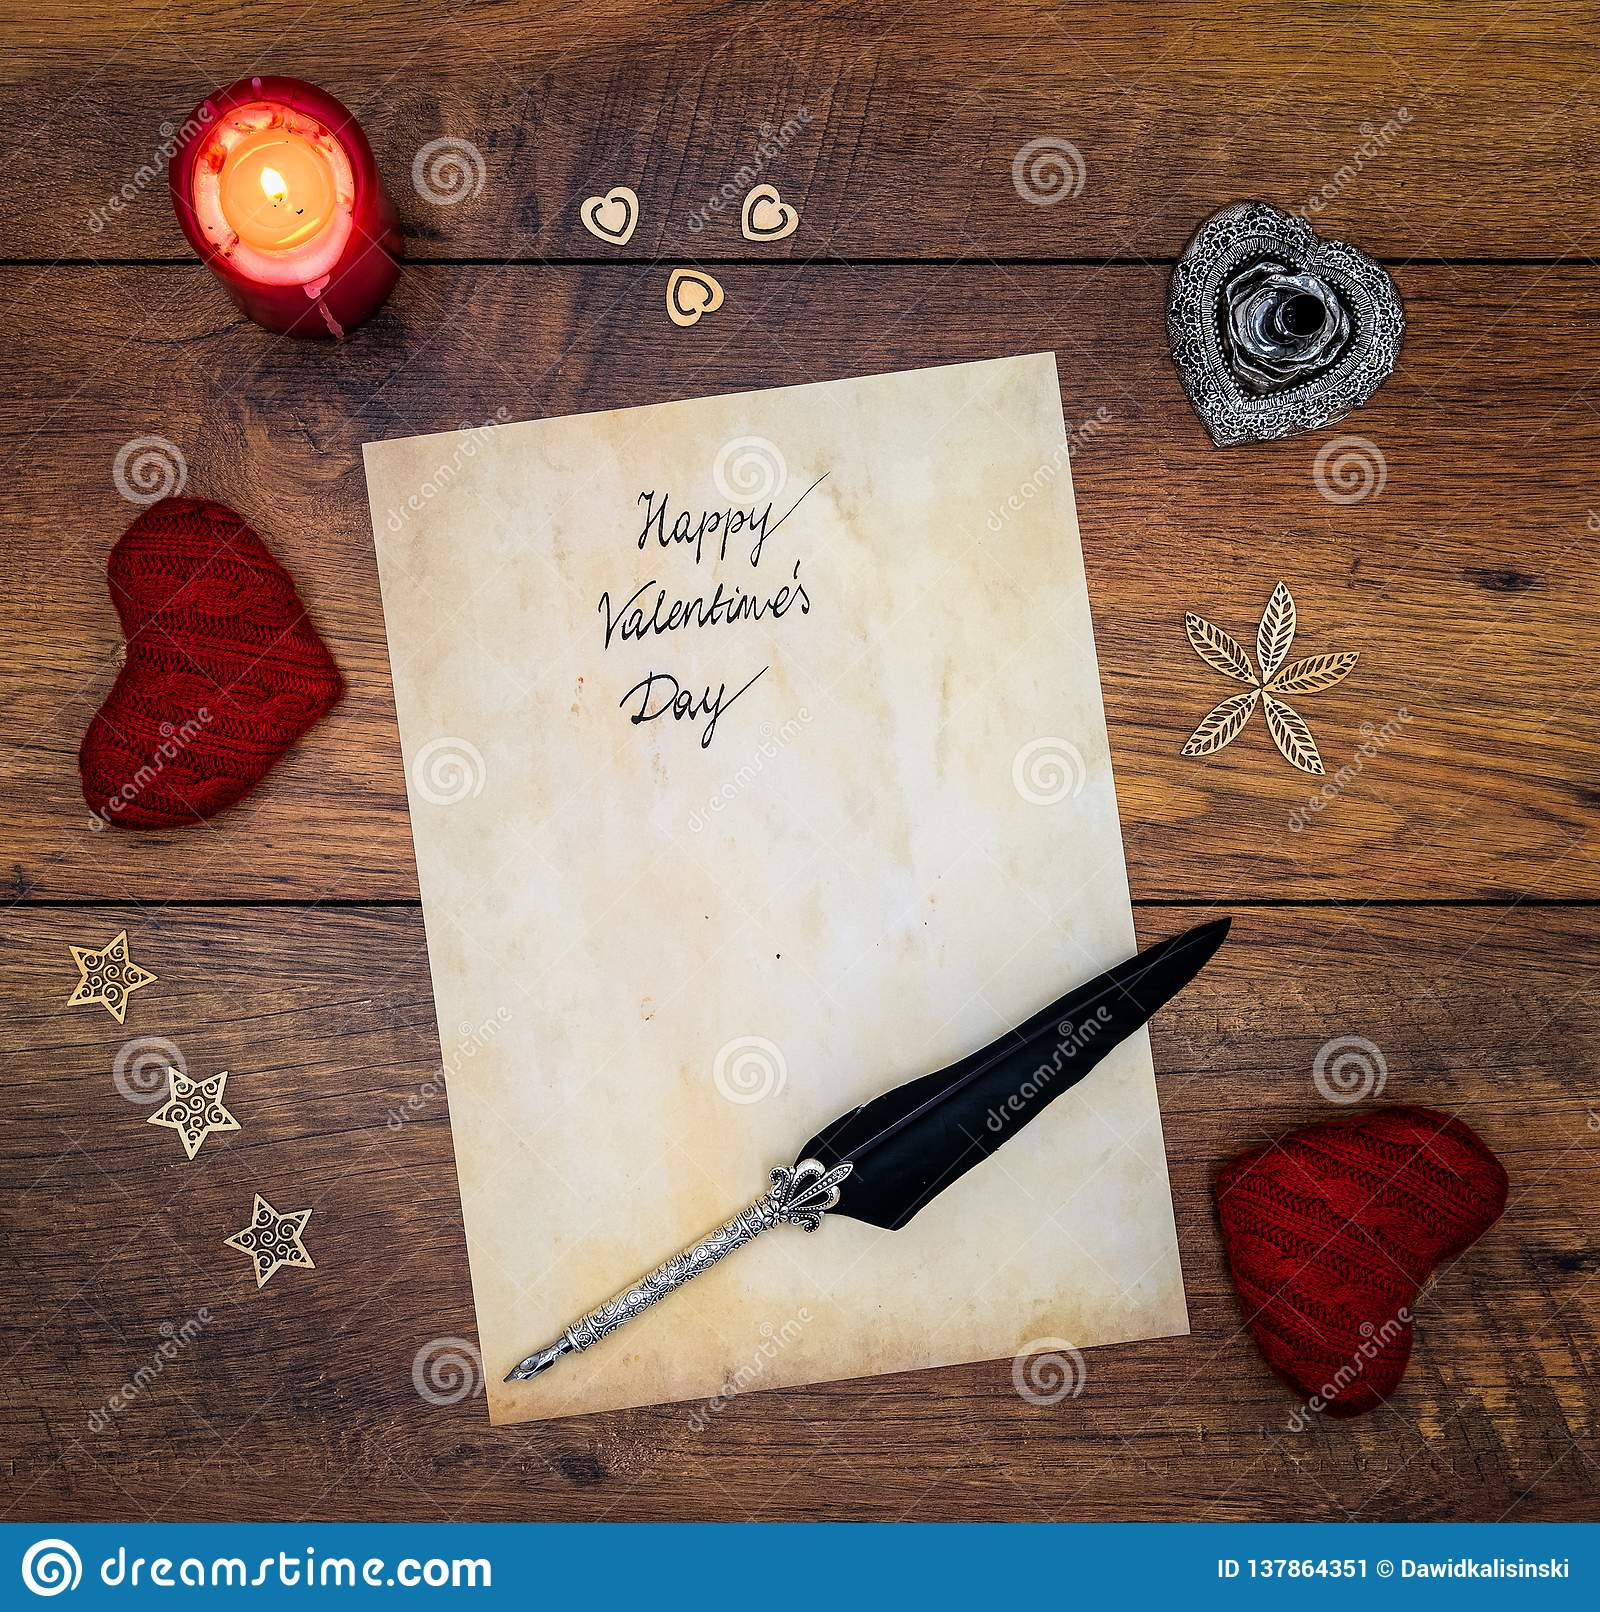 Vintage Valentine`s Day card with red cuddle hearts, wooden decorations, red candle and ink and quill on vintage oak - top view